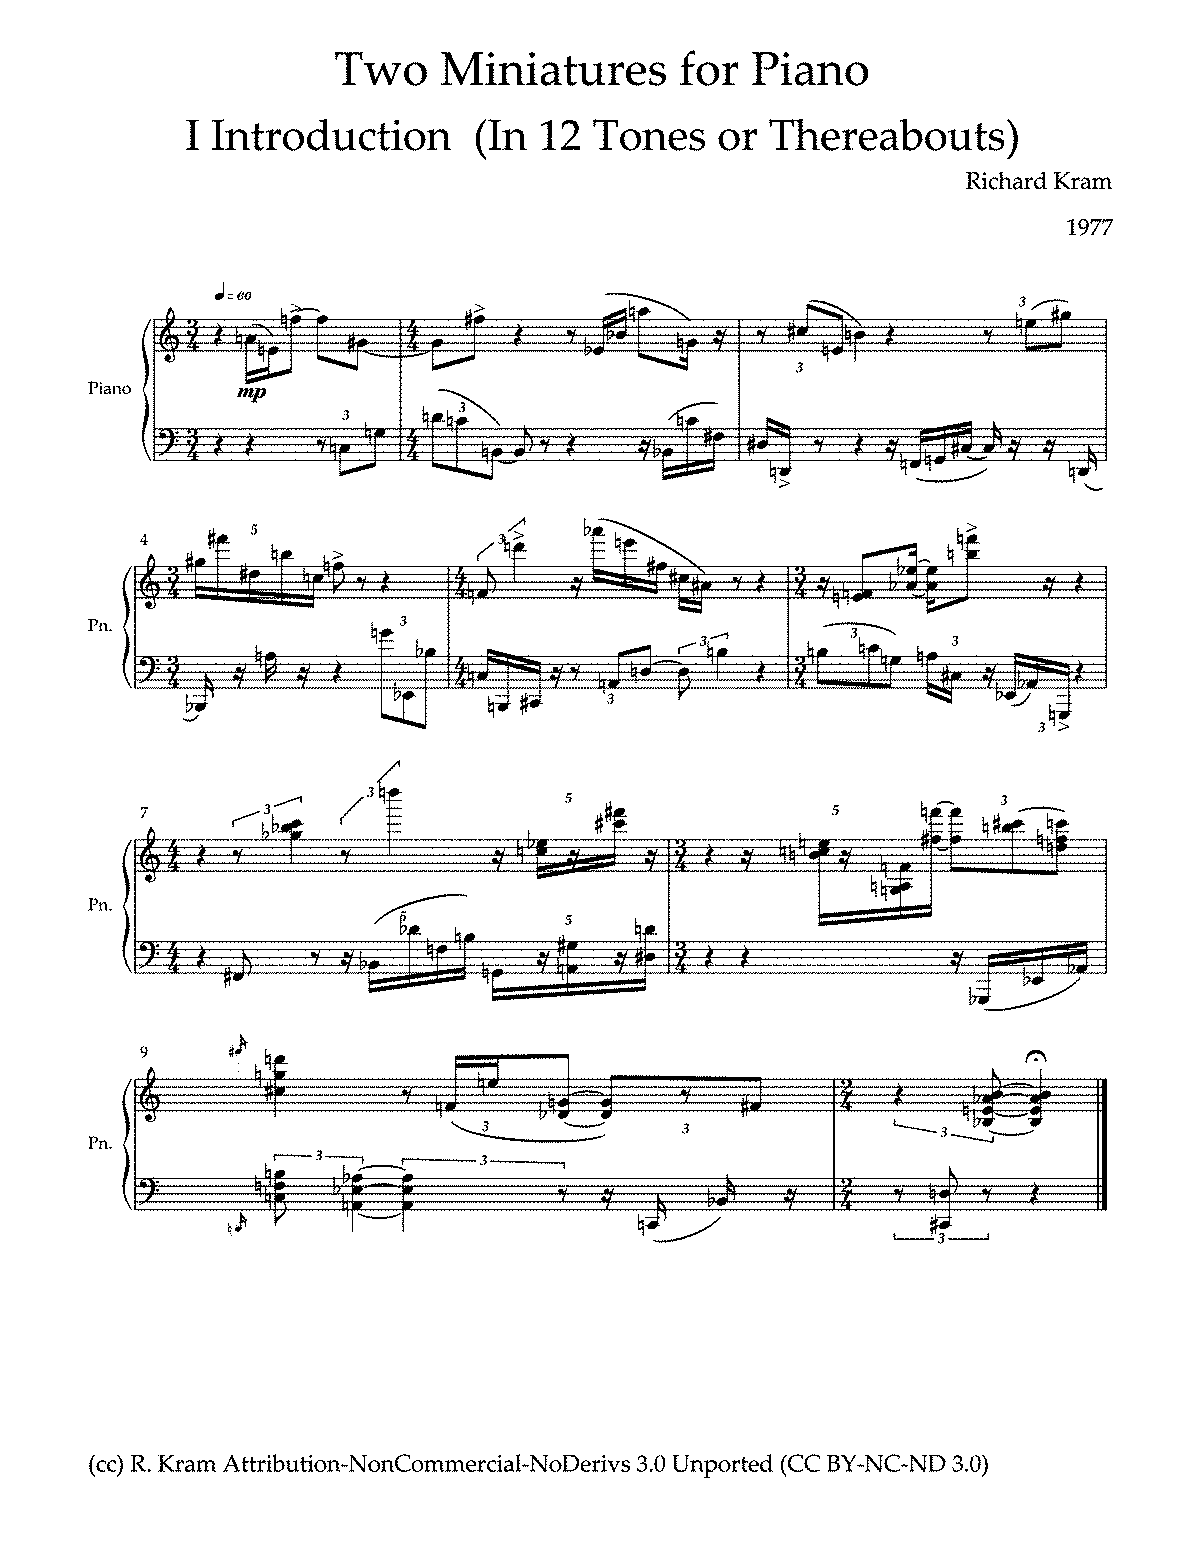 PMLP328459-Two Miniatures for Piano - I Introduction.pdf